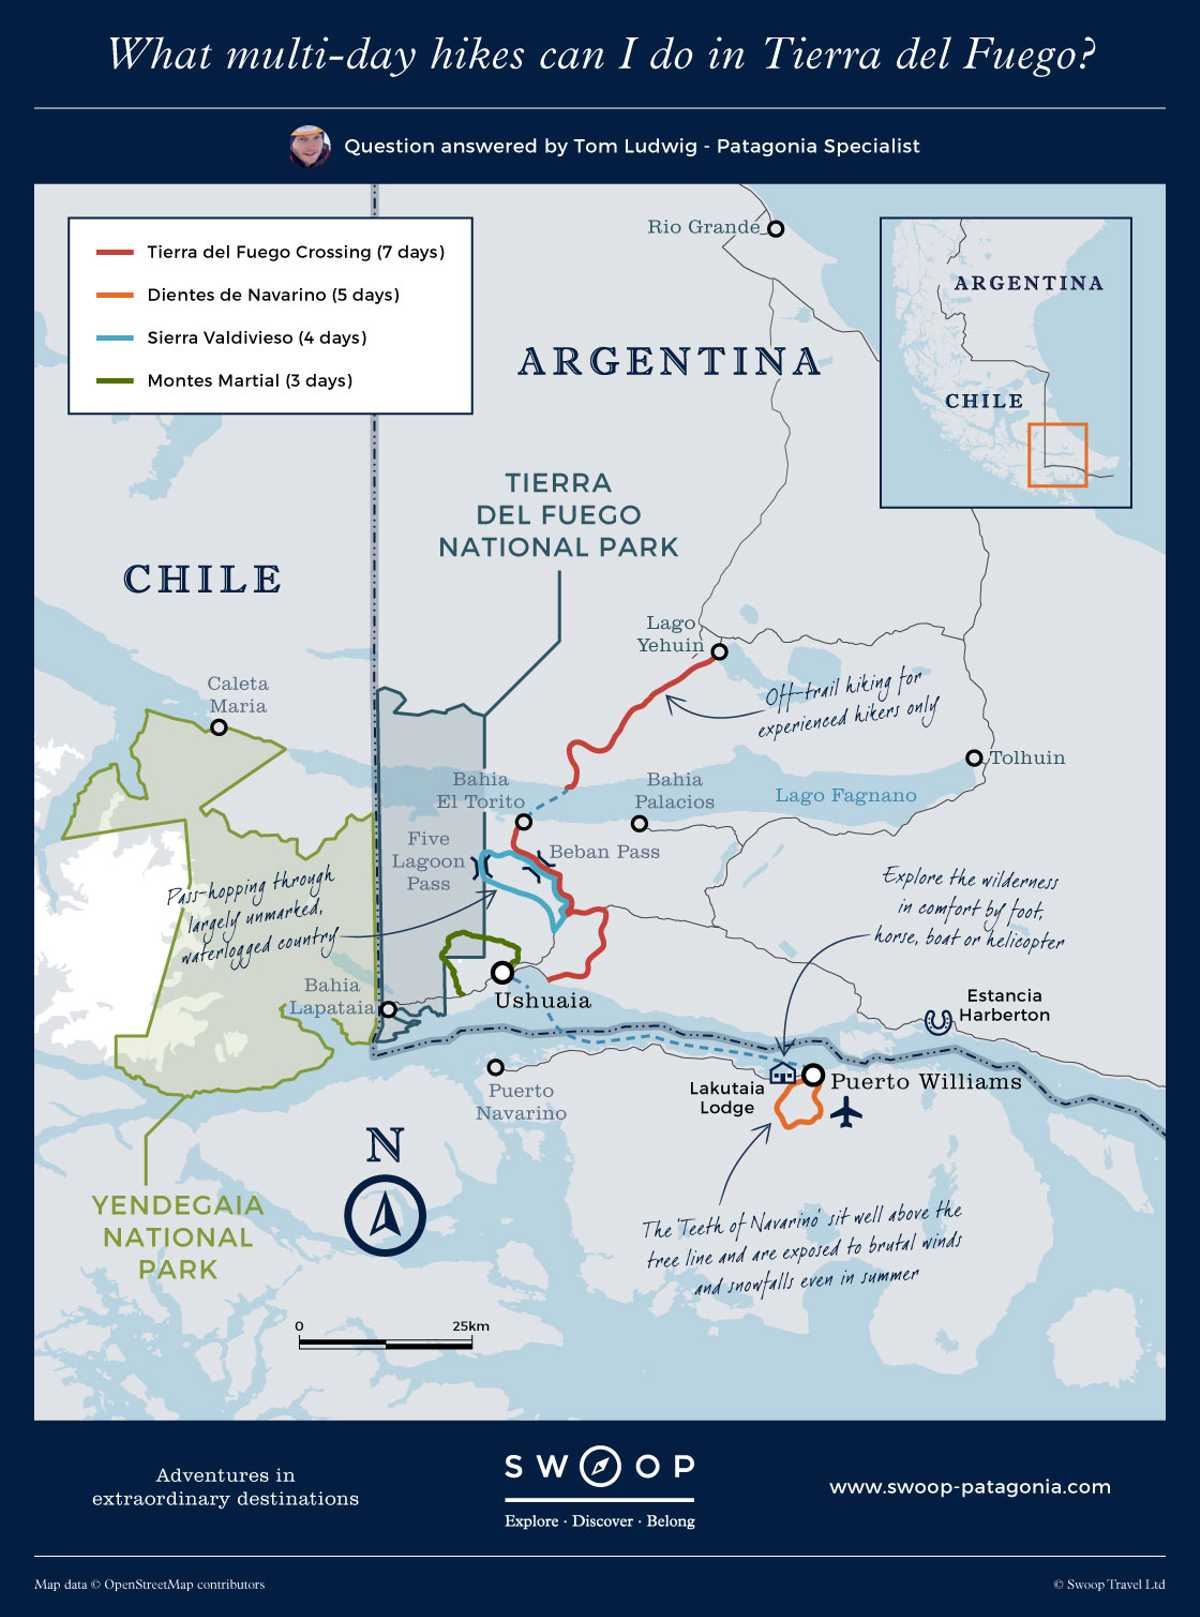 New map Where-multi-day-hikes-can-I-do-in-Tierra-del-Fuego